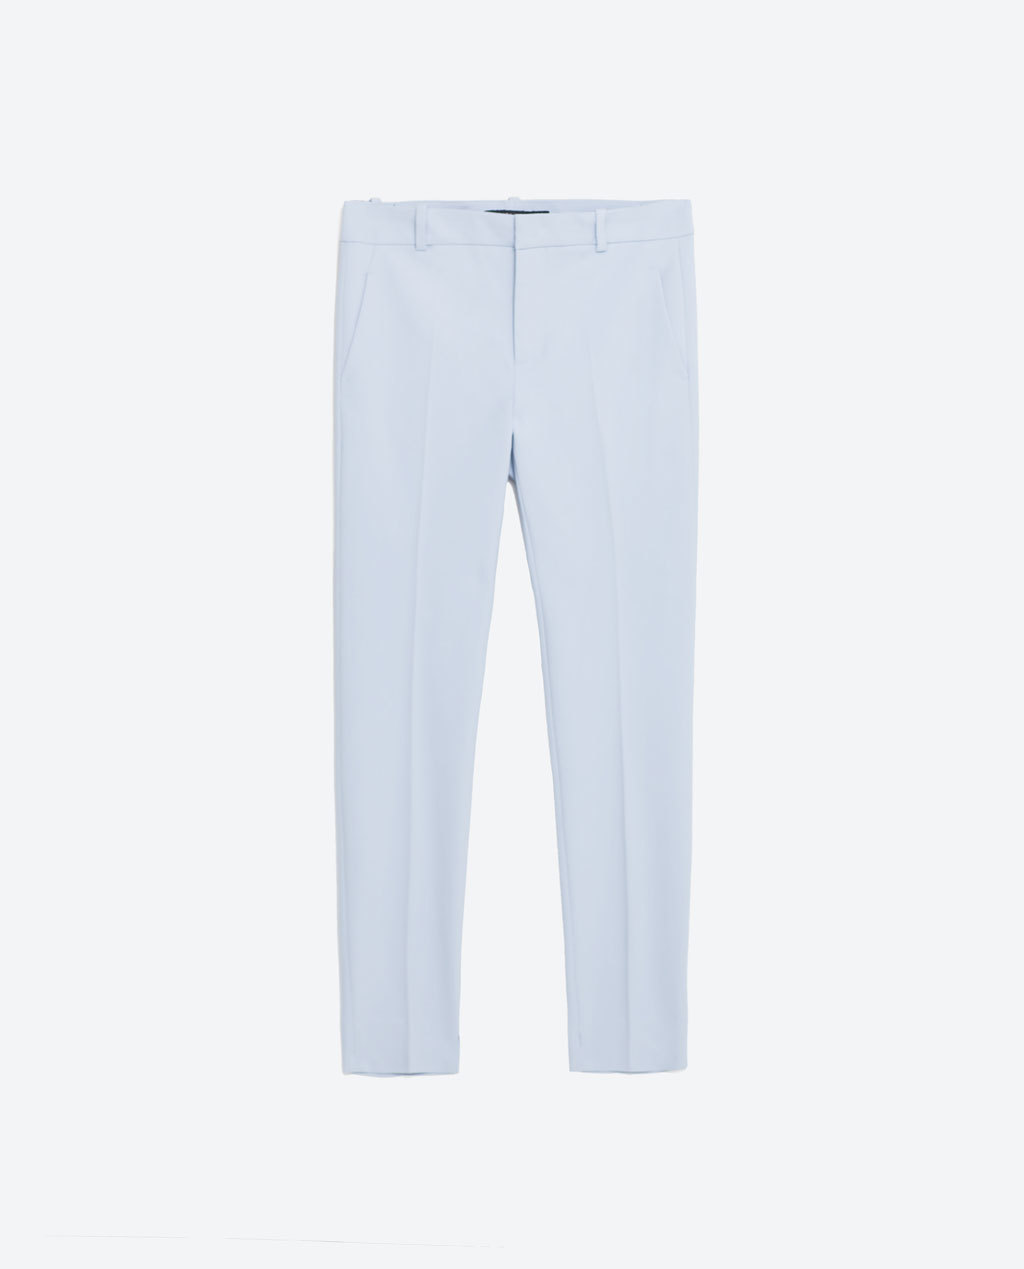 Chino Trousers - pattern: plain; waist: mid/regular rise; predominant colour: pale blue; length: ankle length; fibres: cotton - stretch; fit: straight leg; pattern type: fabric; texture group: other - light to midweight; style: standard; occasions: creative work; season: s/s 2016